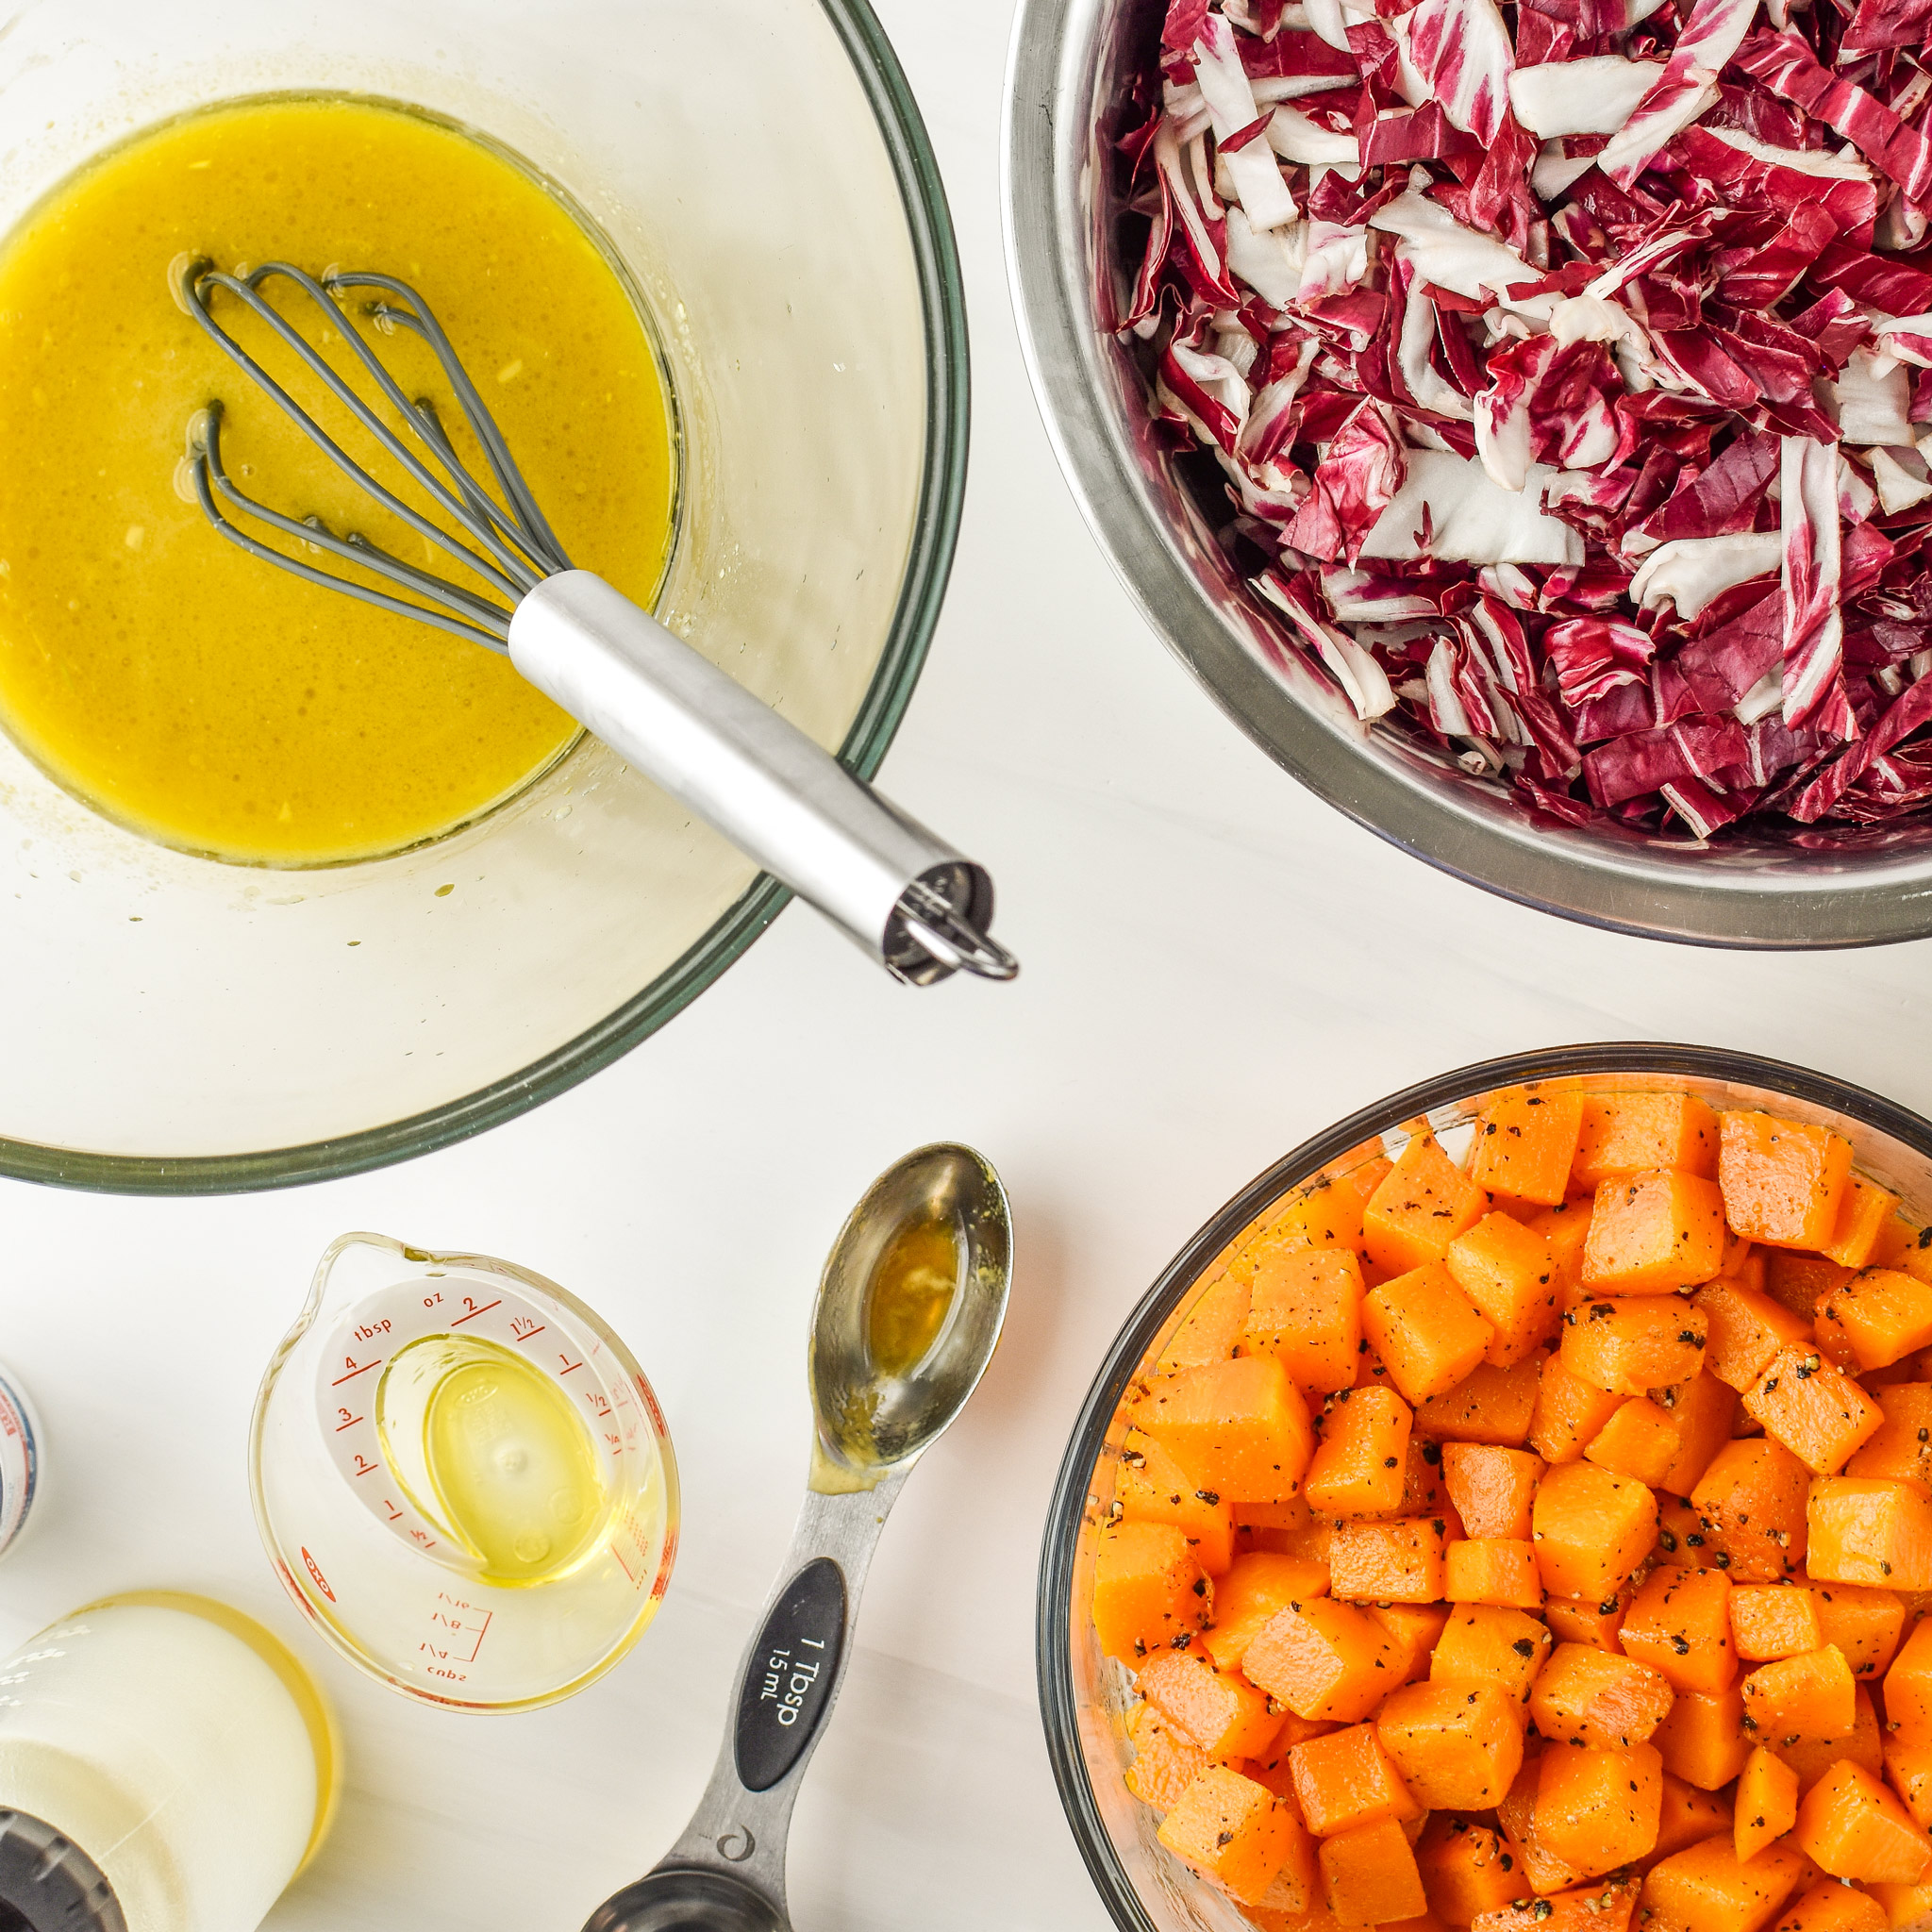 All of the ingredients for the Radicchio and Roasted Squash Salad